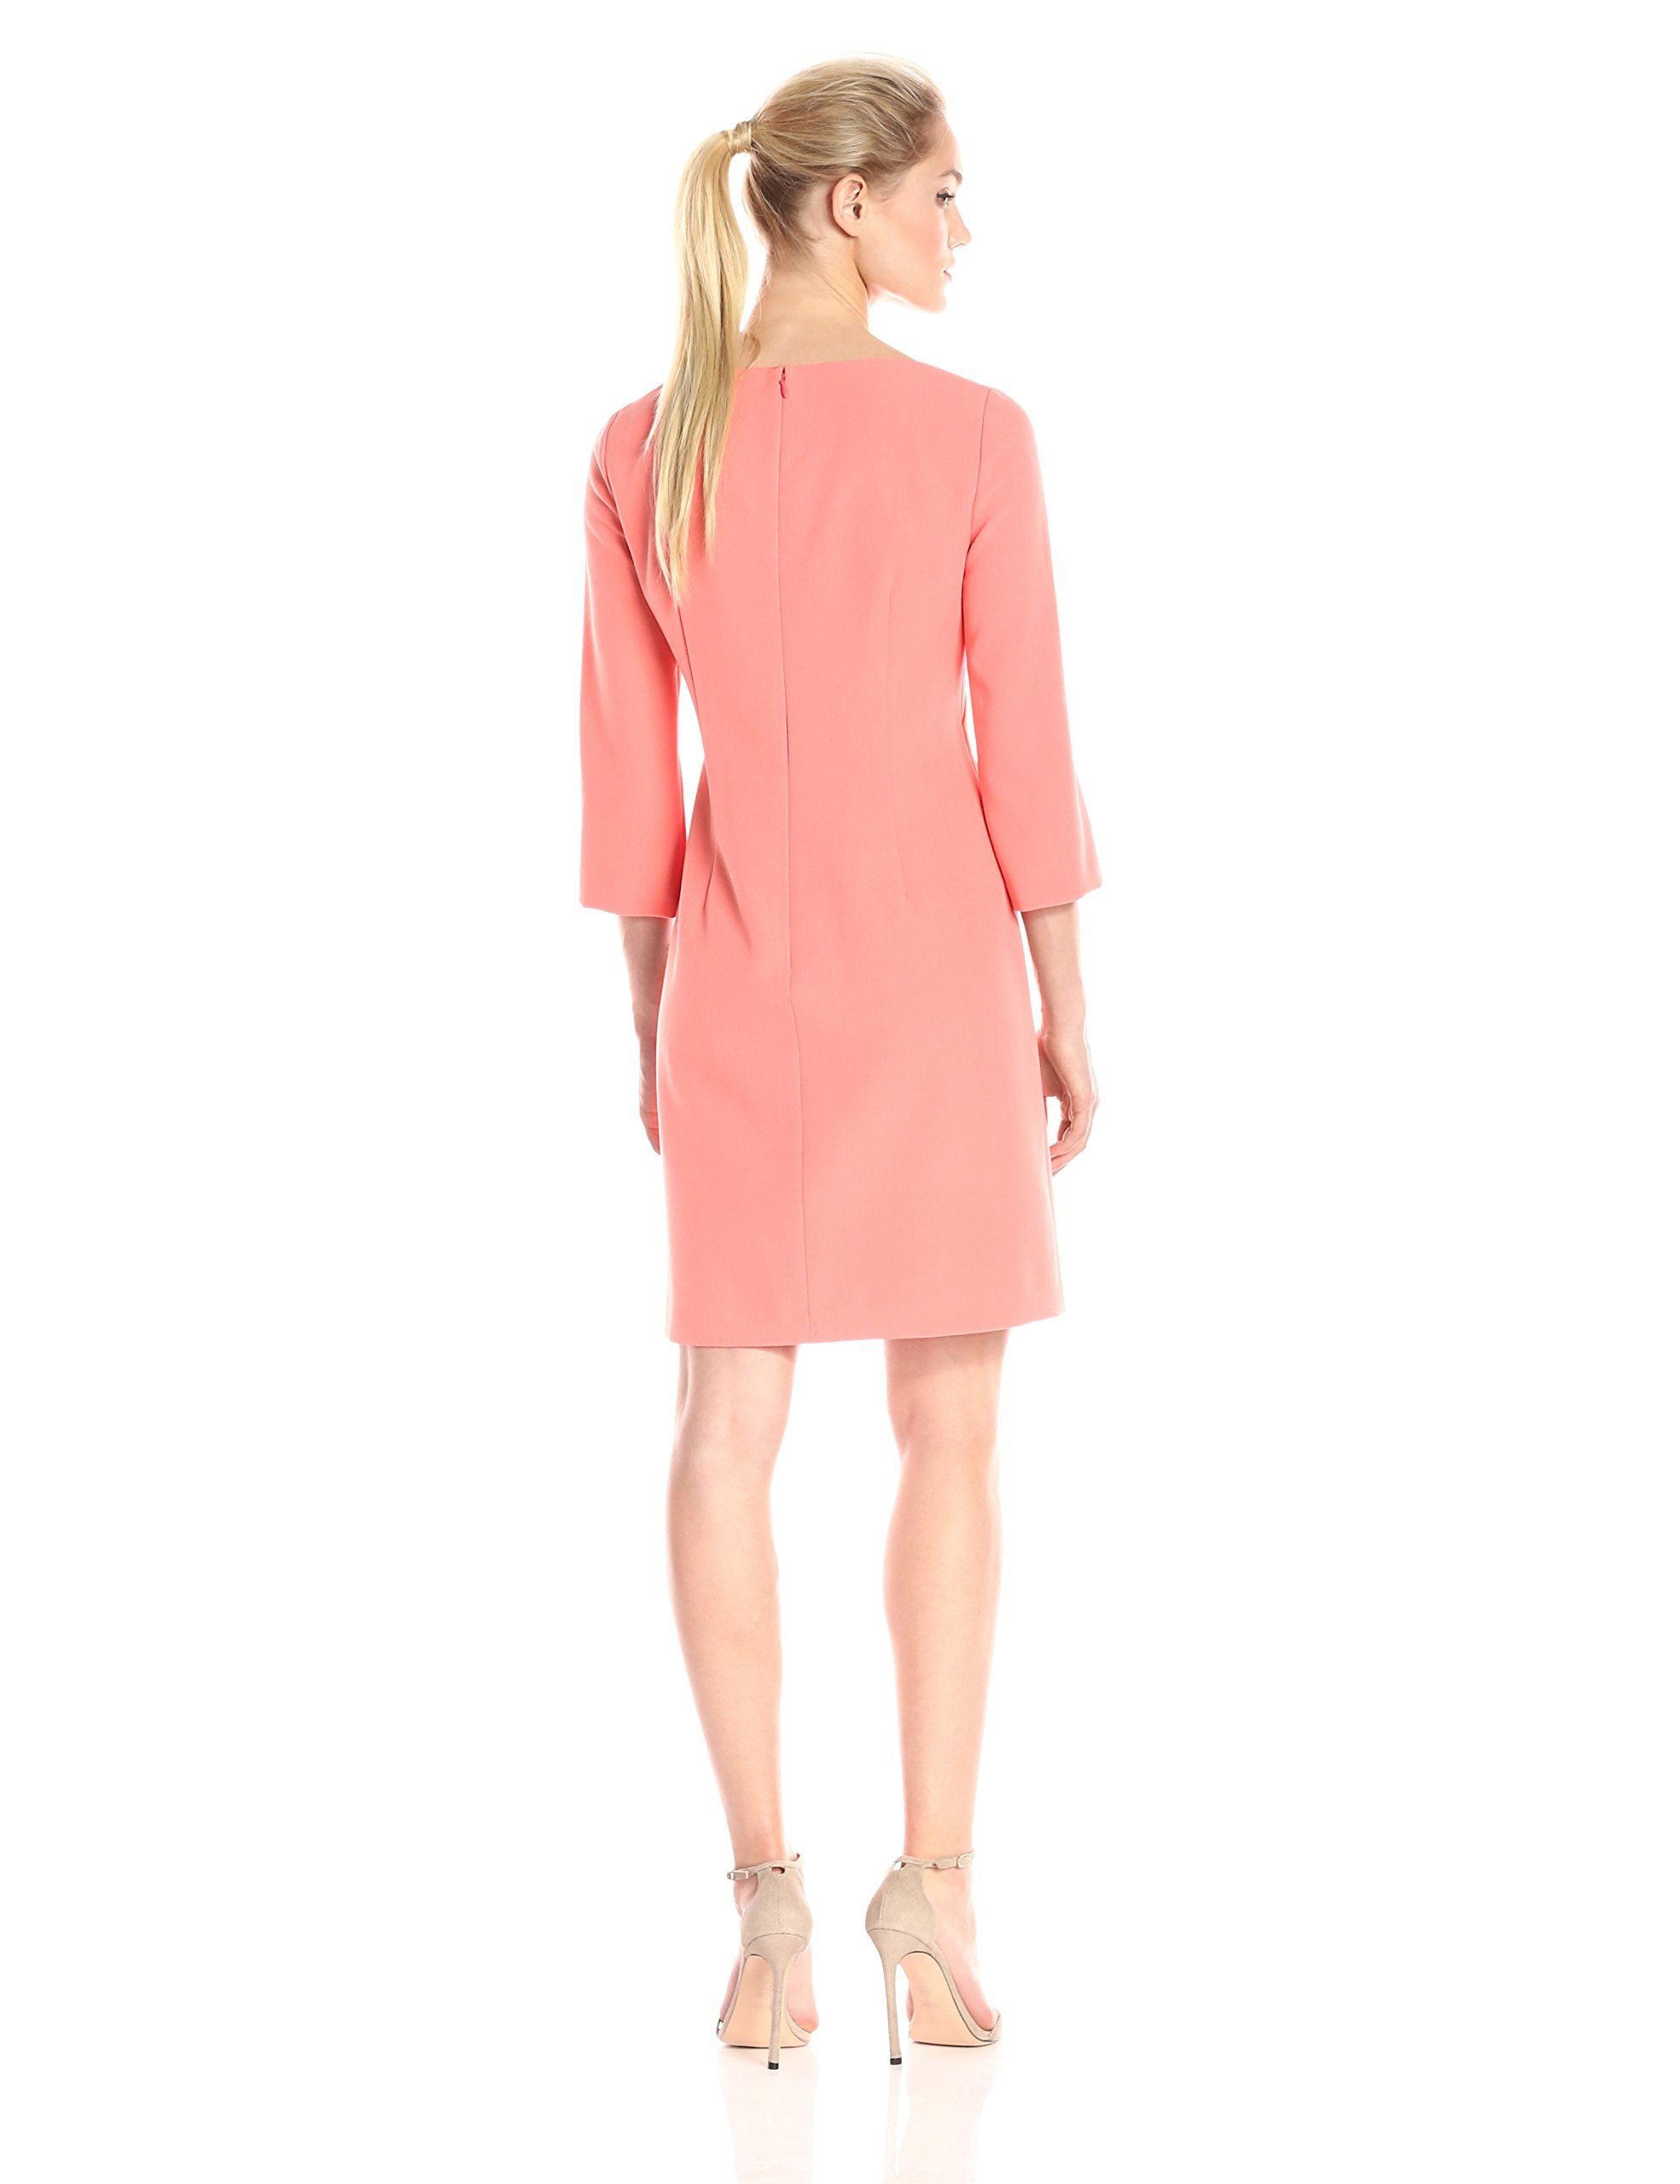 a3572b82e4 Adrianna Papell Womens Petite Three Quarter Sleeve Crepe Shift Dress Melon  12P -- Click on the image for additional details-affiliate link.   WomenDresses